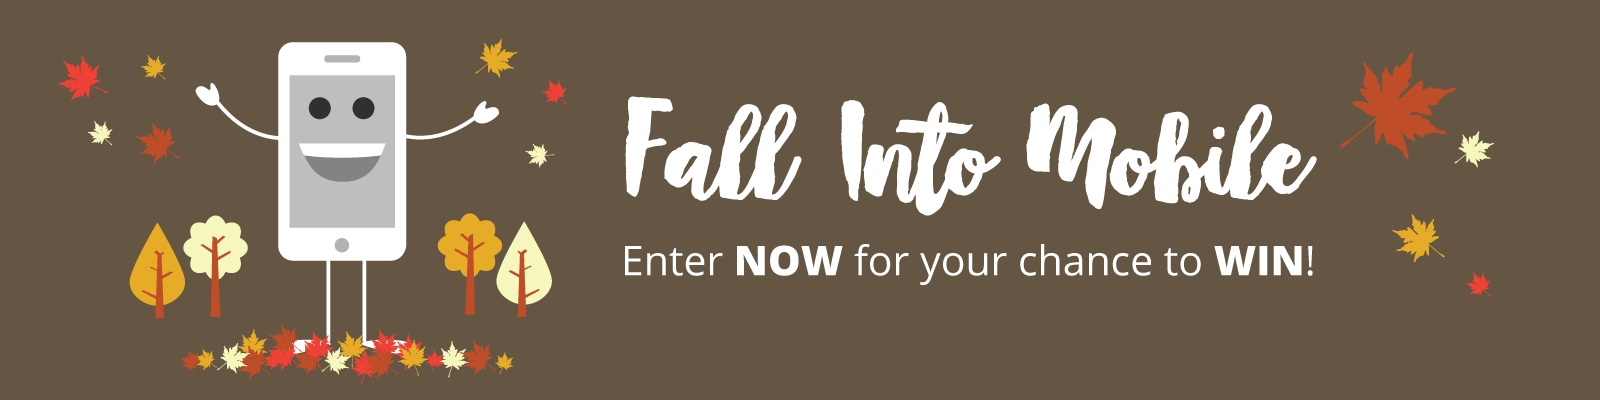 Fall Into Mobile Contest Banner